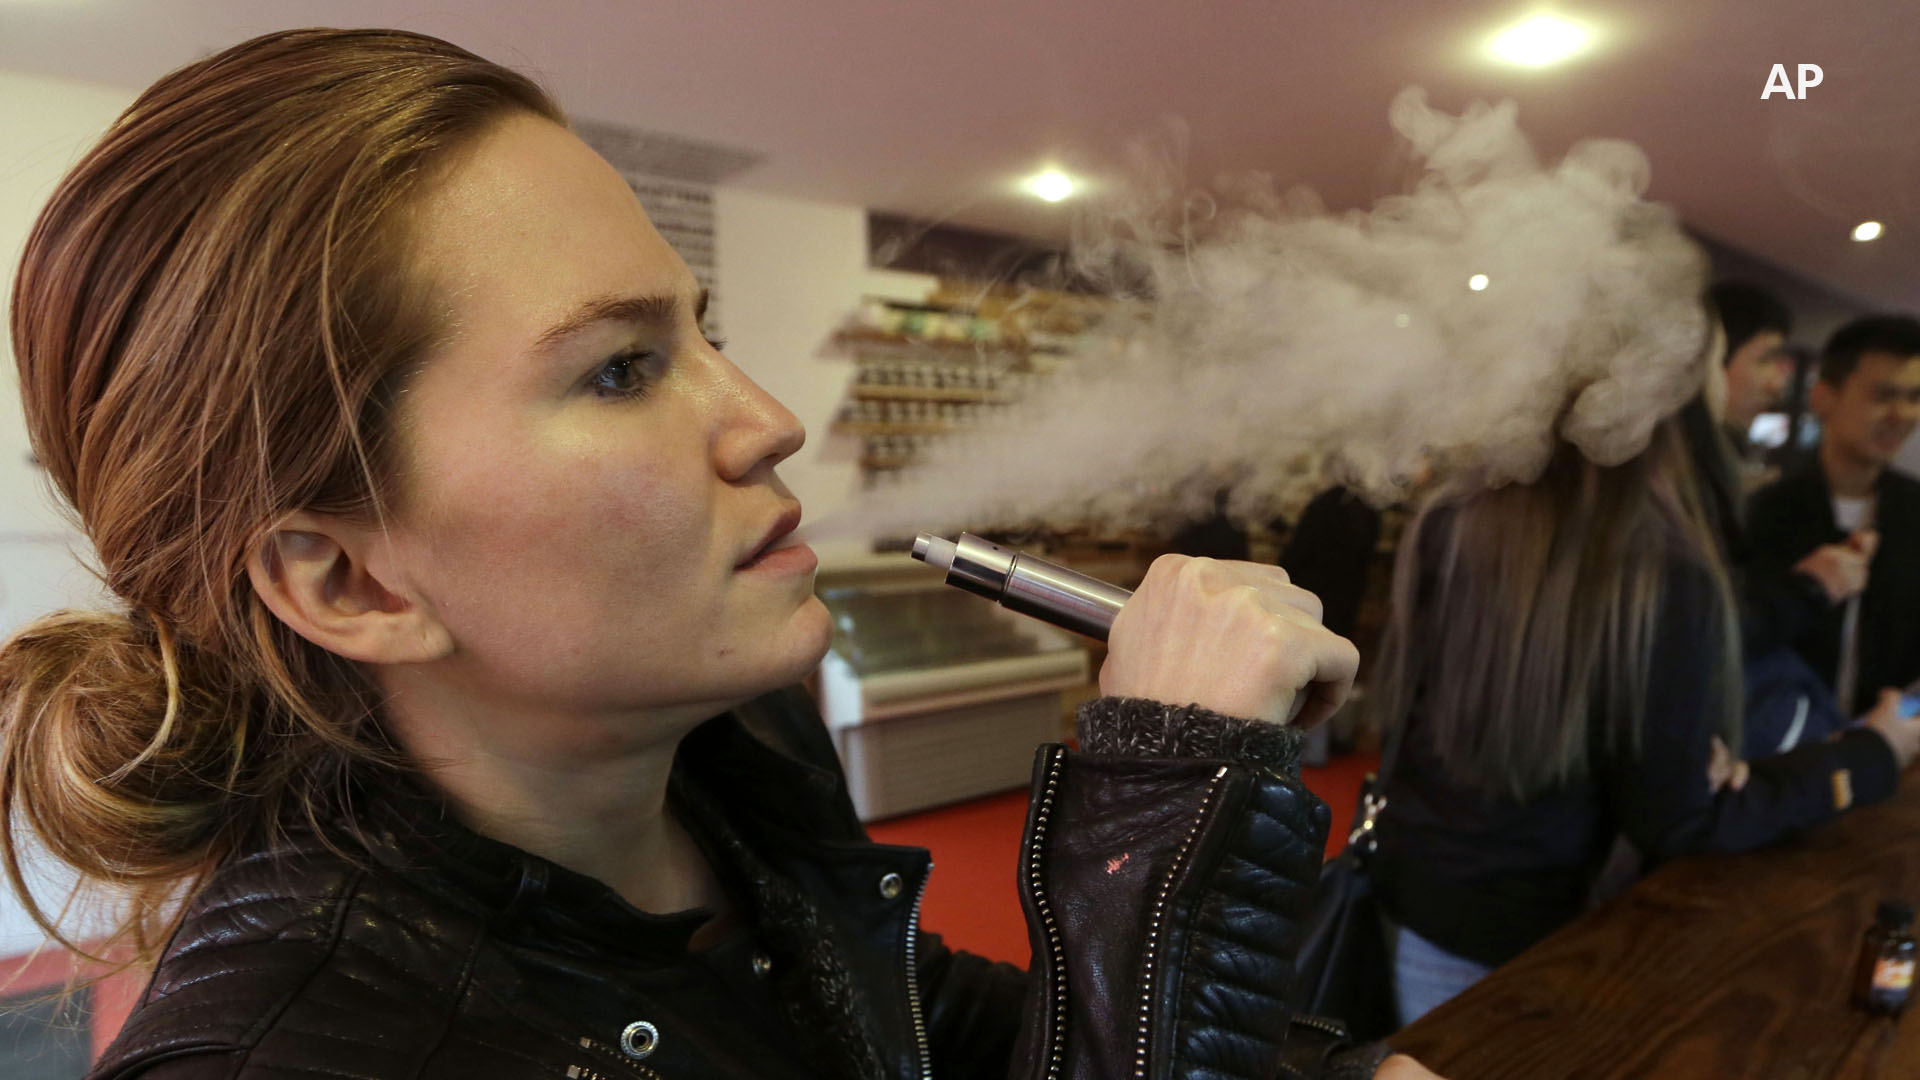 How do cigarettes, e-cigarettes differ?